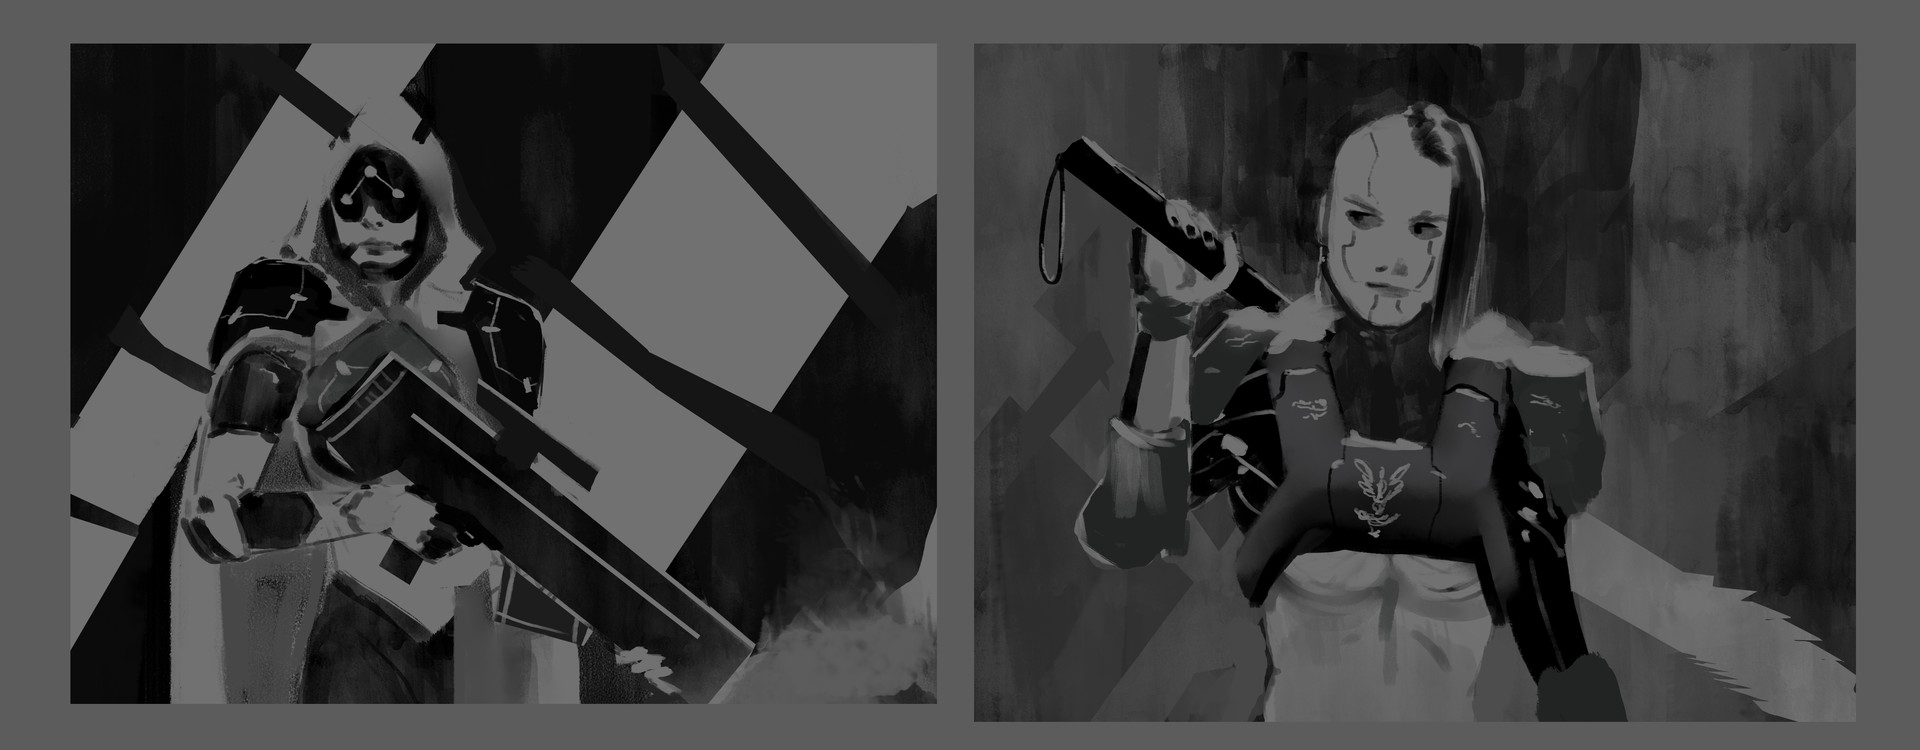 Two more quick thumbnails